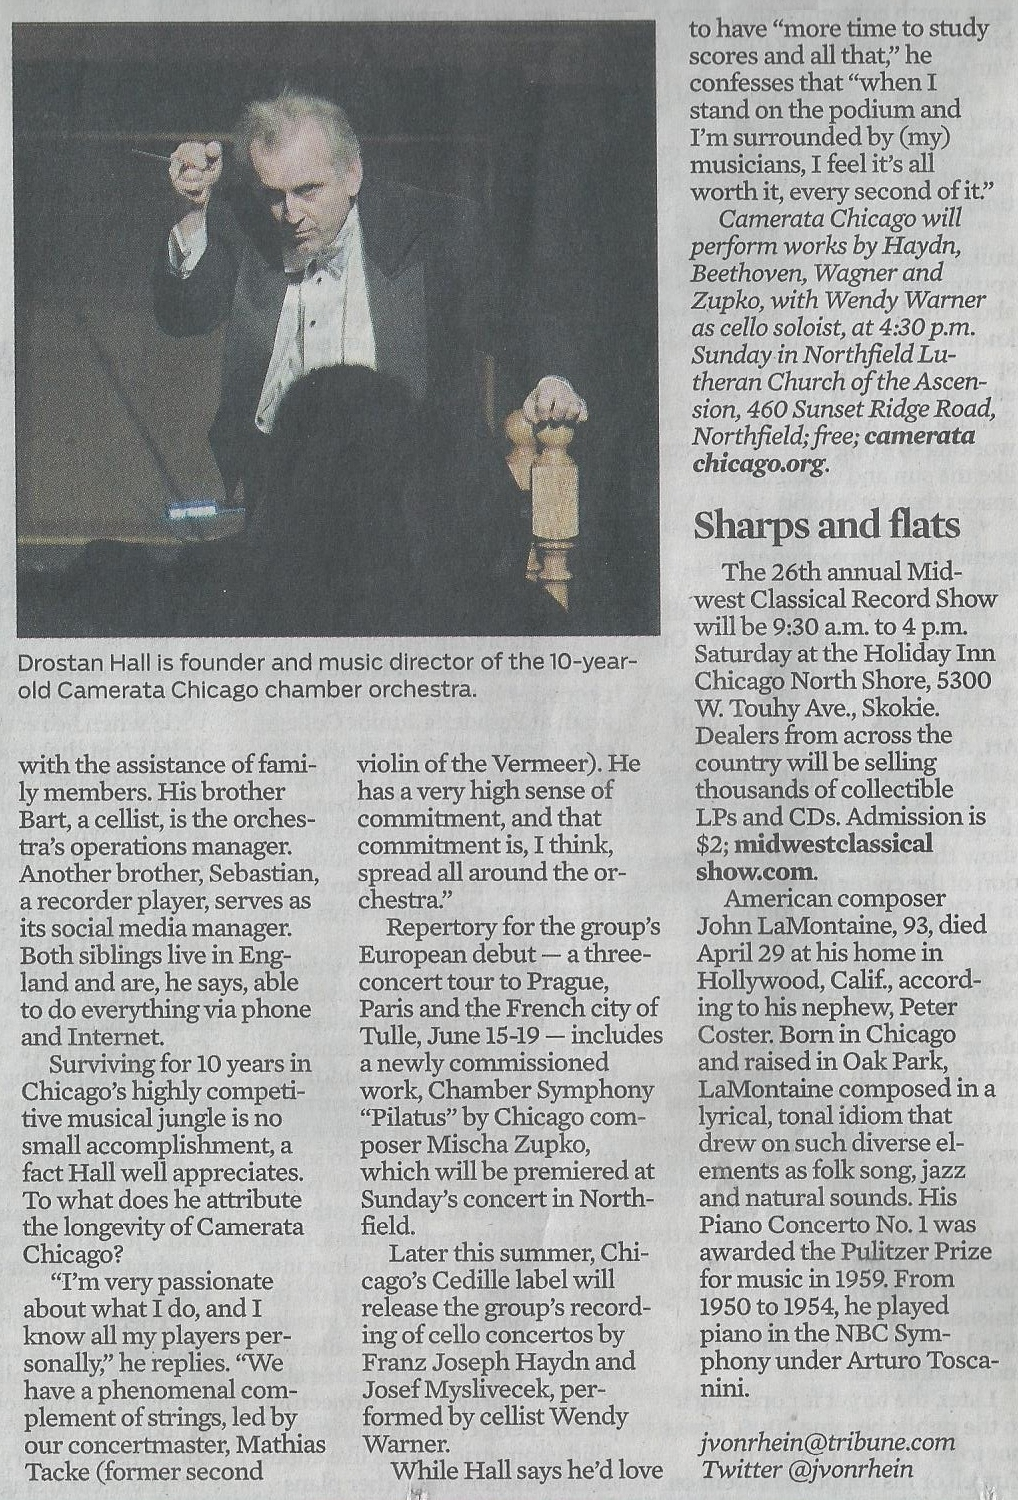 Small Chicago orchestra is thinking big, by John von Rhein, Chicago Tribune, May 15, 2013 (part 2)